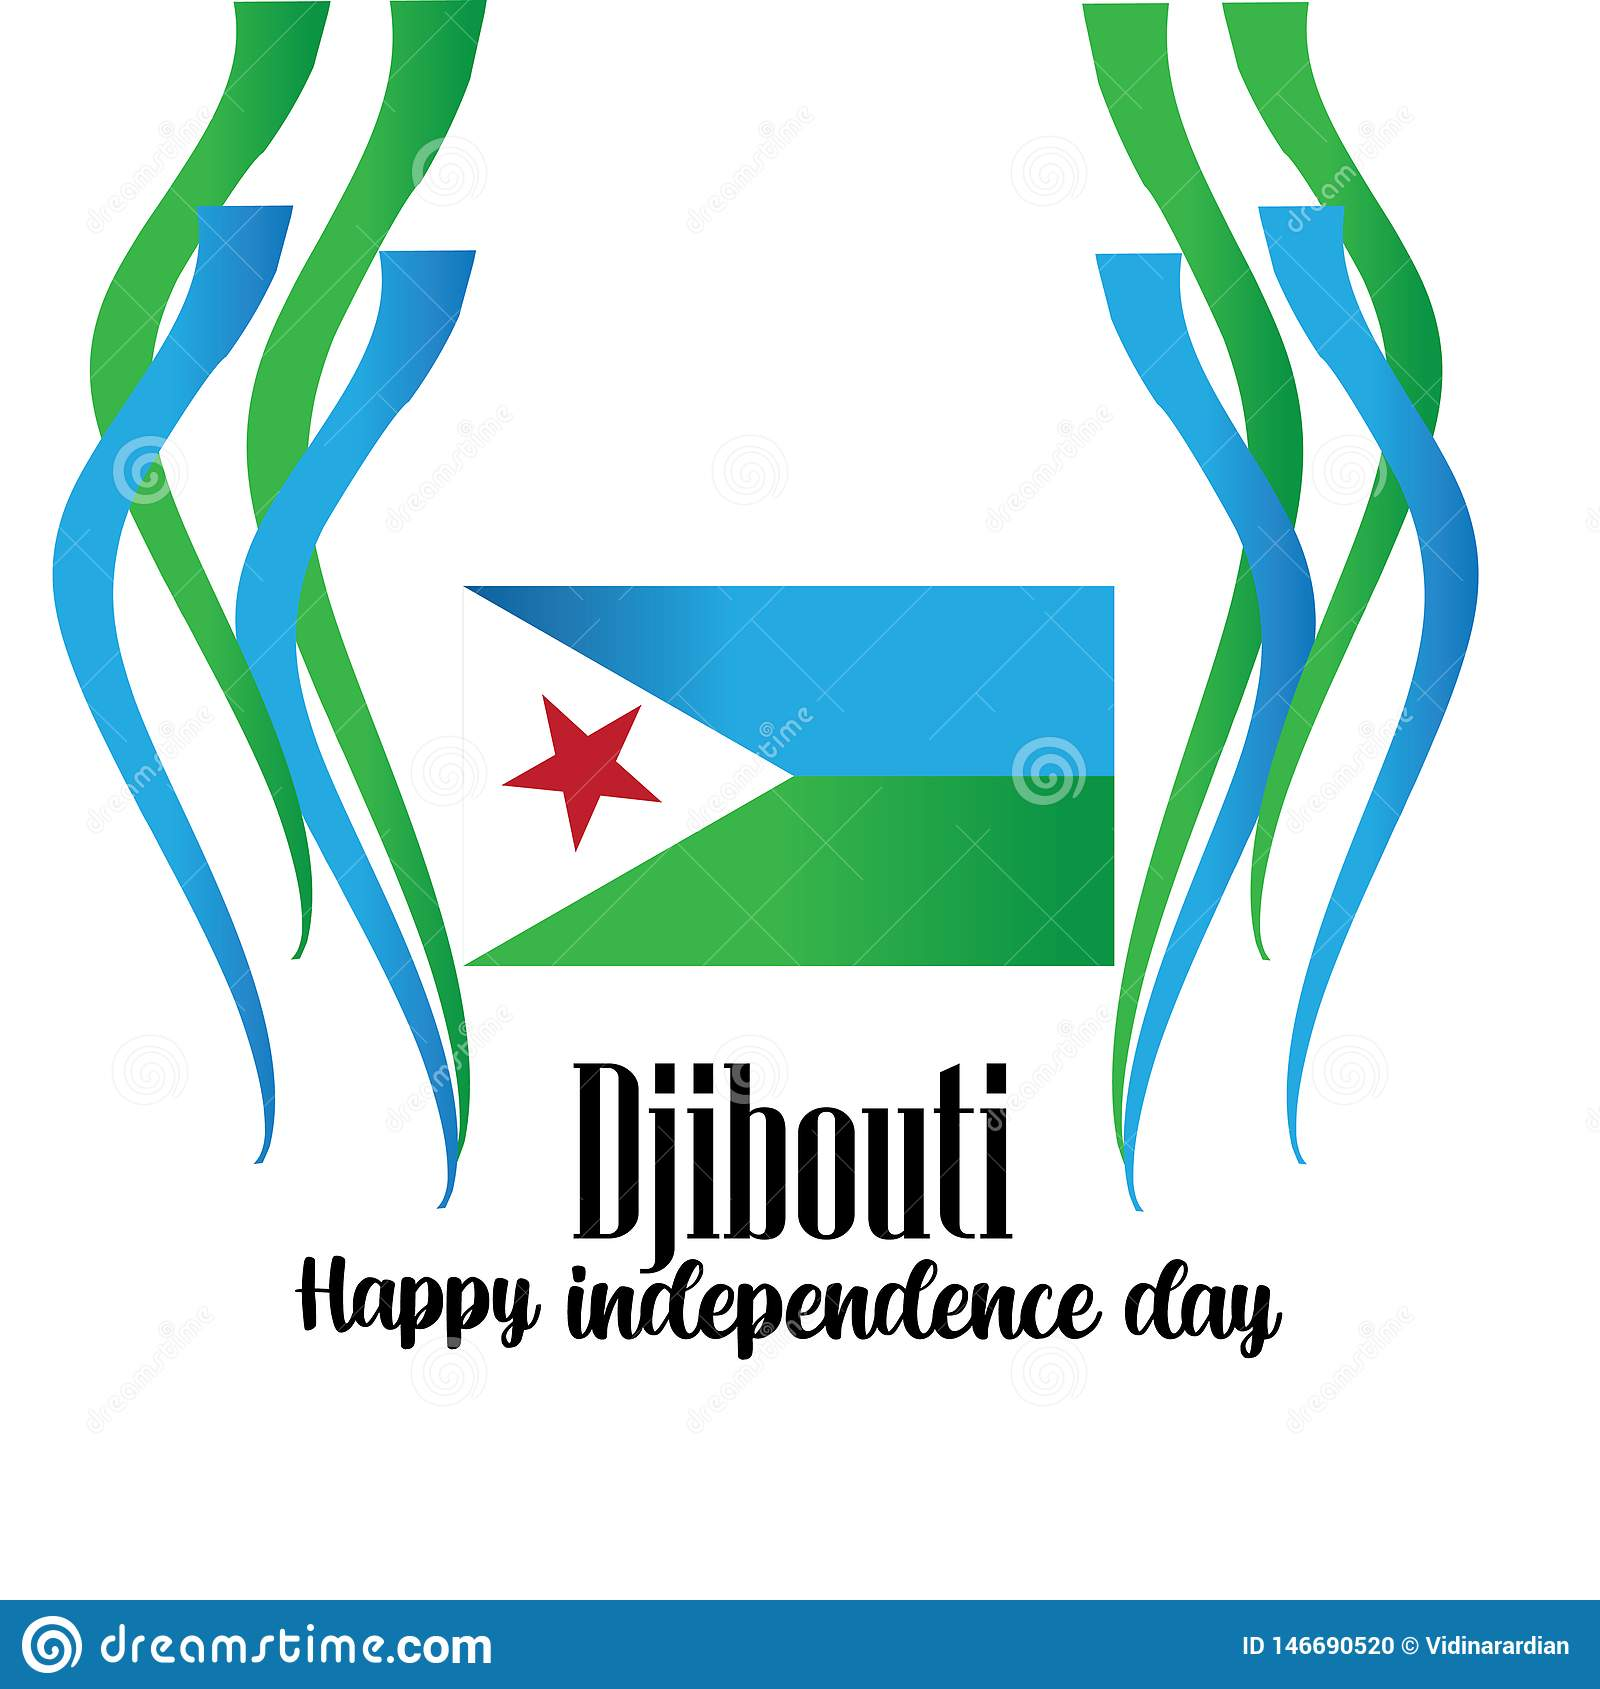 Vector illustration of a Background for Djibouti Independence Day Design. - Vector